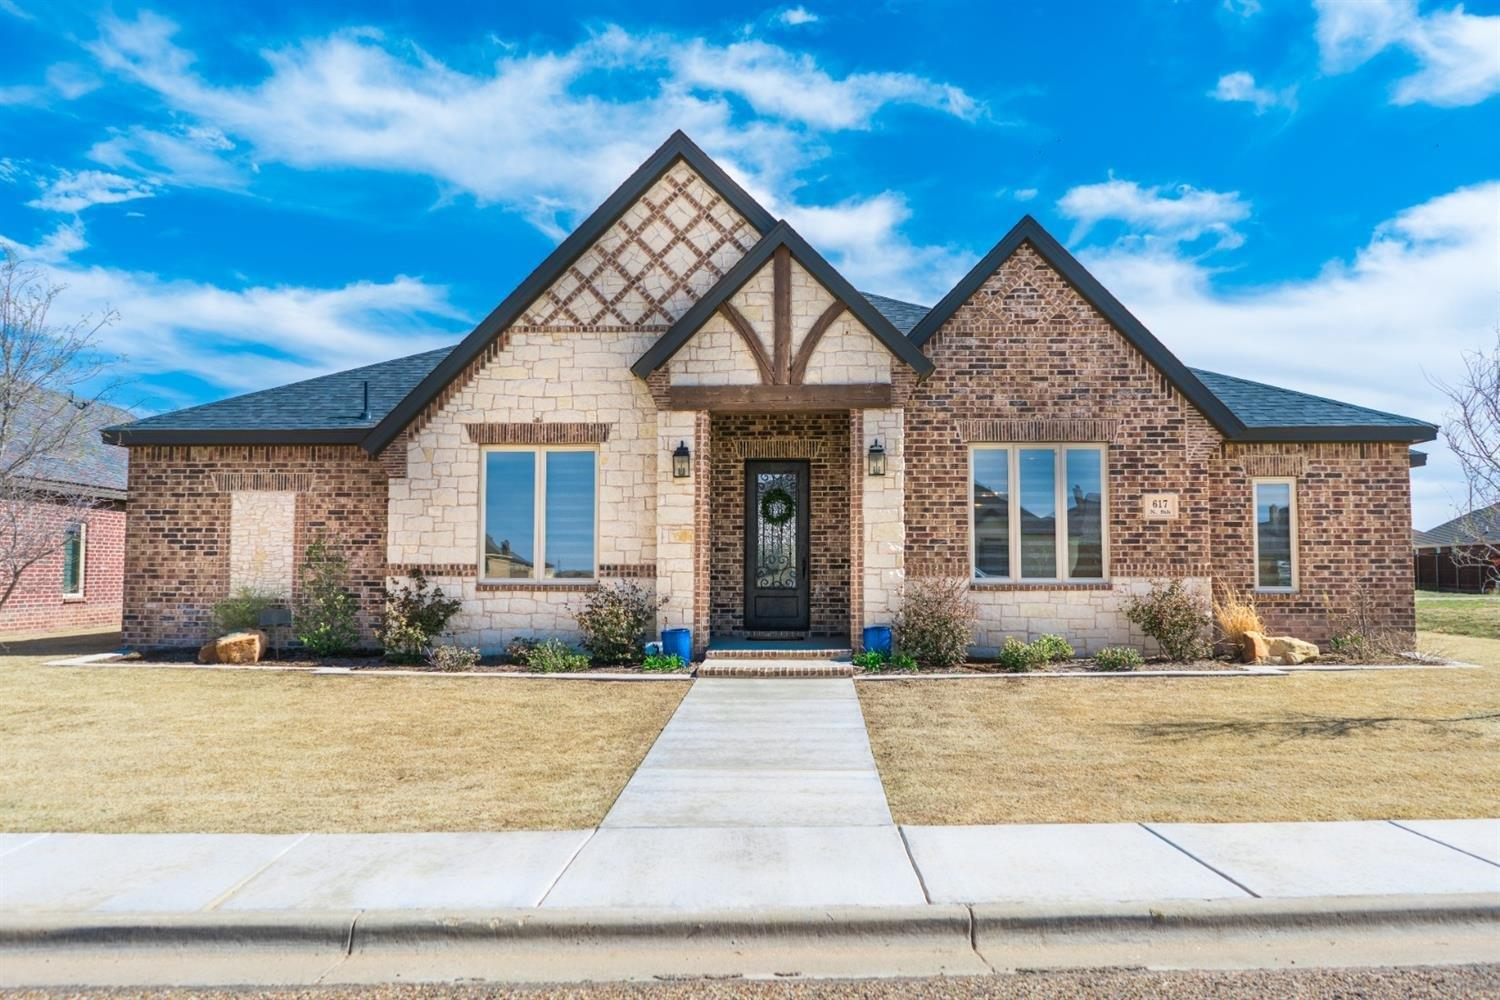 Welcome to this Beautiful Dan Wilson Home in Preston Manor! Built in 2017, This Amazing 4 Bedroom, 3 Bath, 2+ Car Garage Home Incorporates Brick, Stone and Stucco Exterior, Has an Open Floor Plan, Vaulted Ceilings with Beams, Large Granite Island in Kitchen with lots of Space and Custom Cabinets.  Grand Master Suite with Vaulted Ceiling, Walk-In Closet with Tons of Built-Ins, Great tub with Seperate Shower.  Exceptional Laundry Room with Storage. Fully Landscaped, 2 X 6 Exterior Walls Almost Doubles Energy Efficiency of This Home and So Much More.  Located in Preston Manor with Parks, Pool, Tennis Courts and Frenship Schools!   Come See This Gem Today!